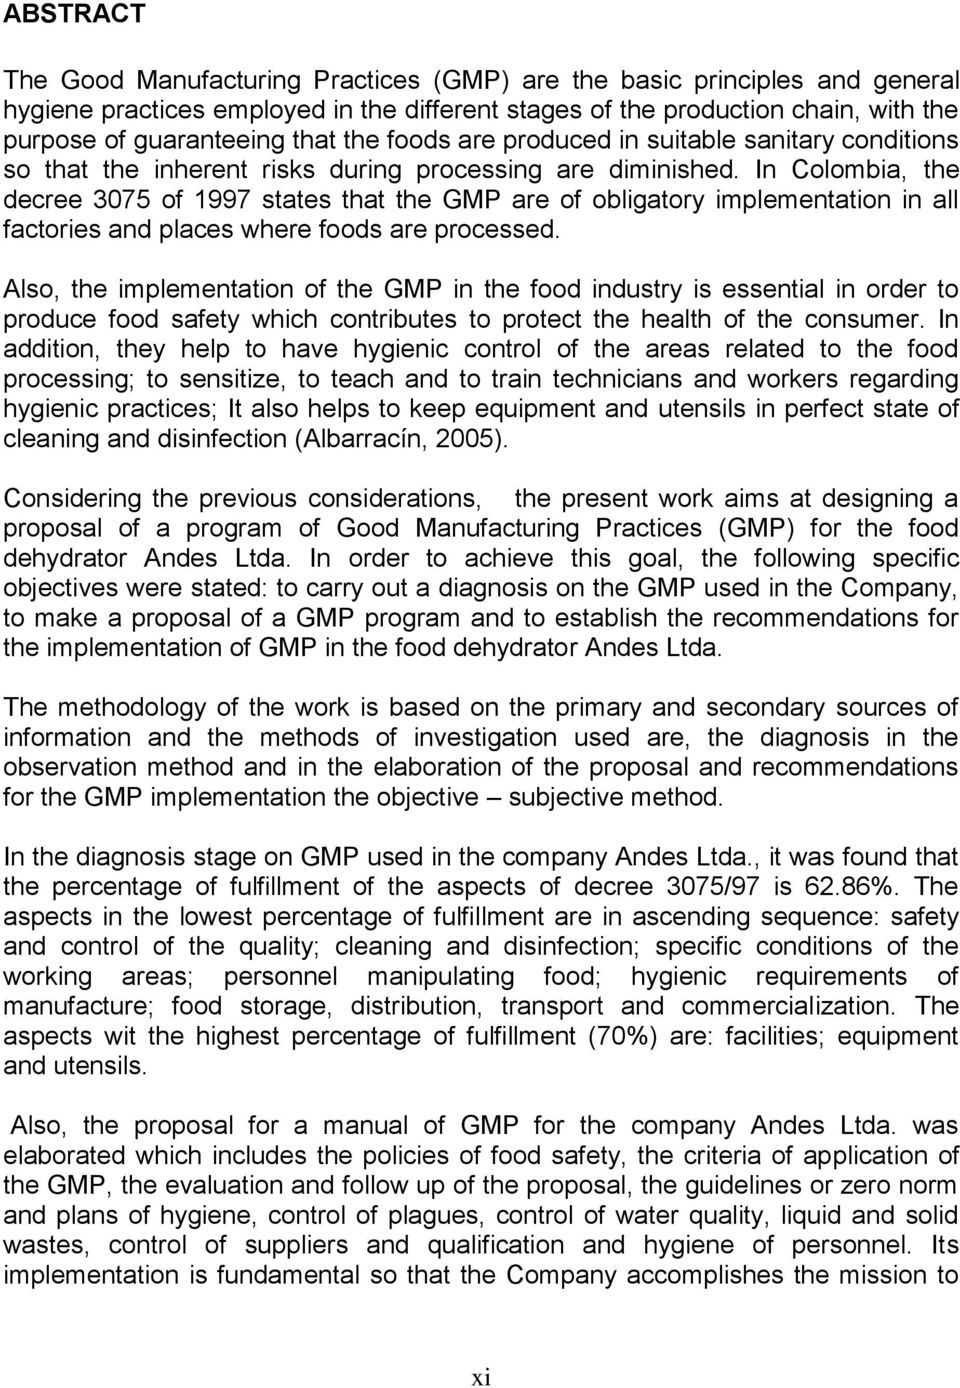 In Colombia, the decree 3075 of 1997 states that the GMP are of obligatory implementation in all factories and places where foods are processed.